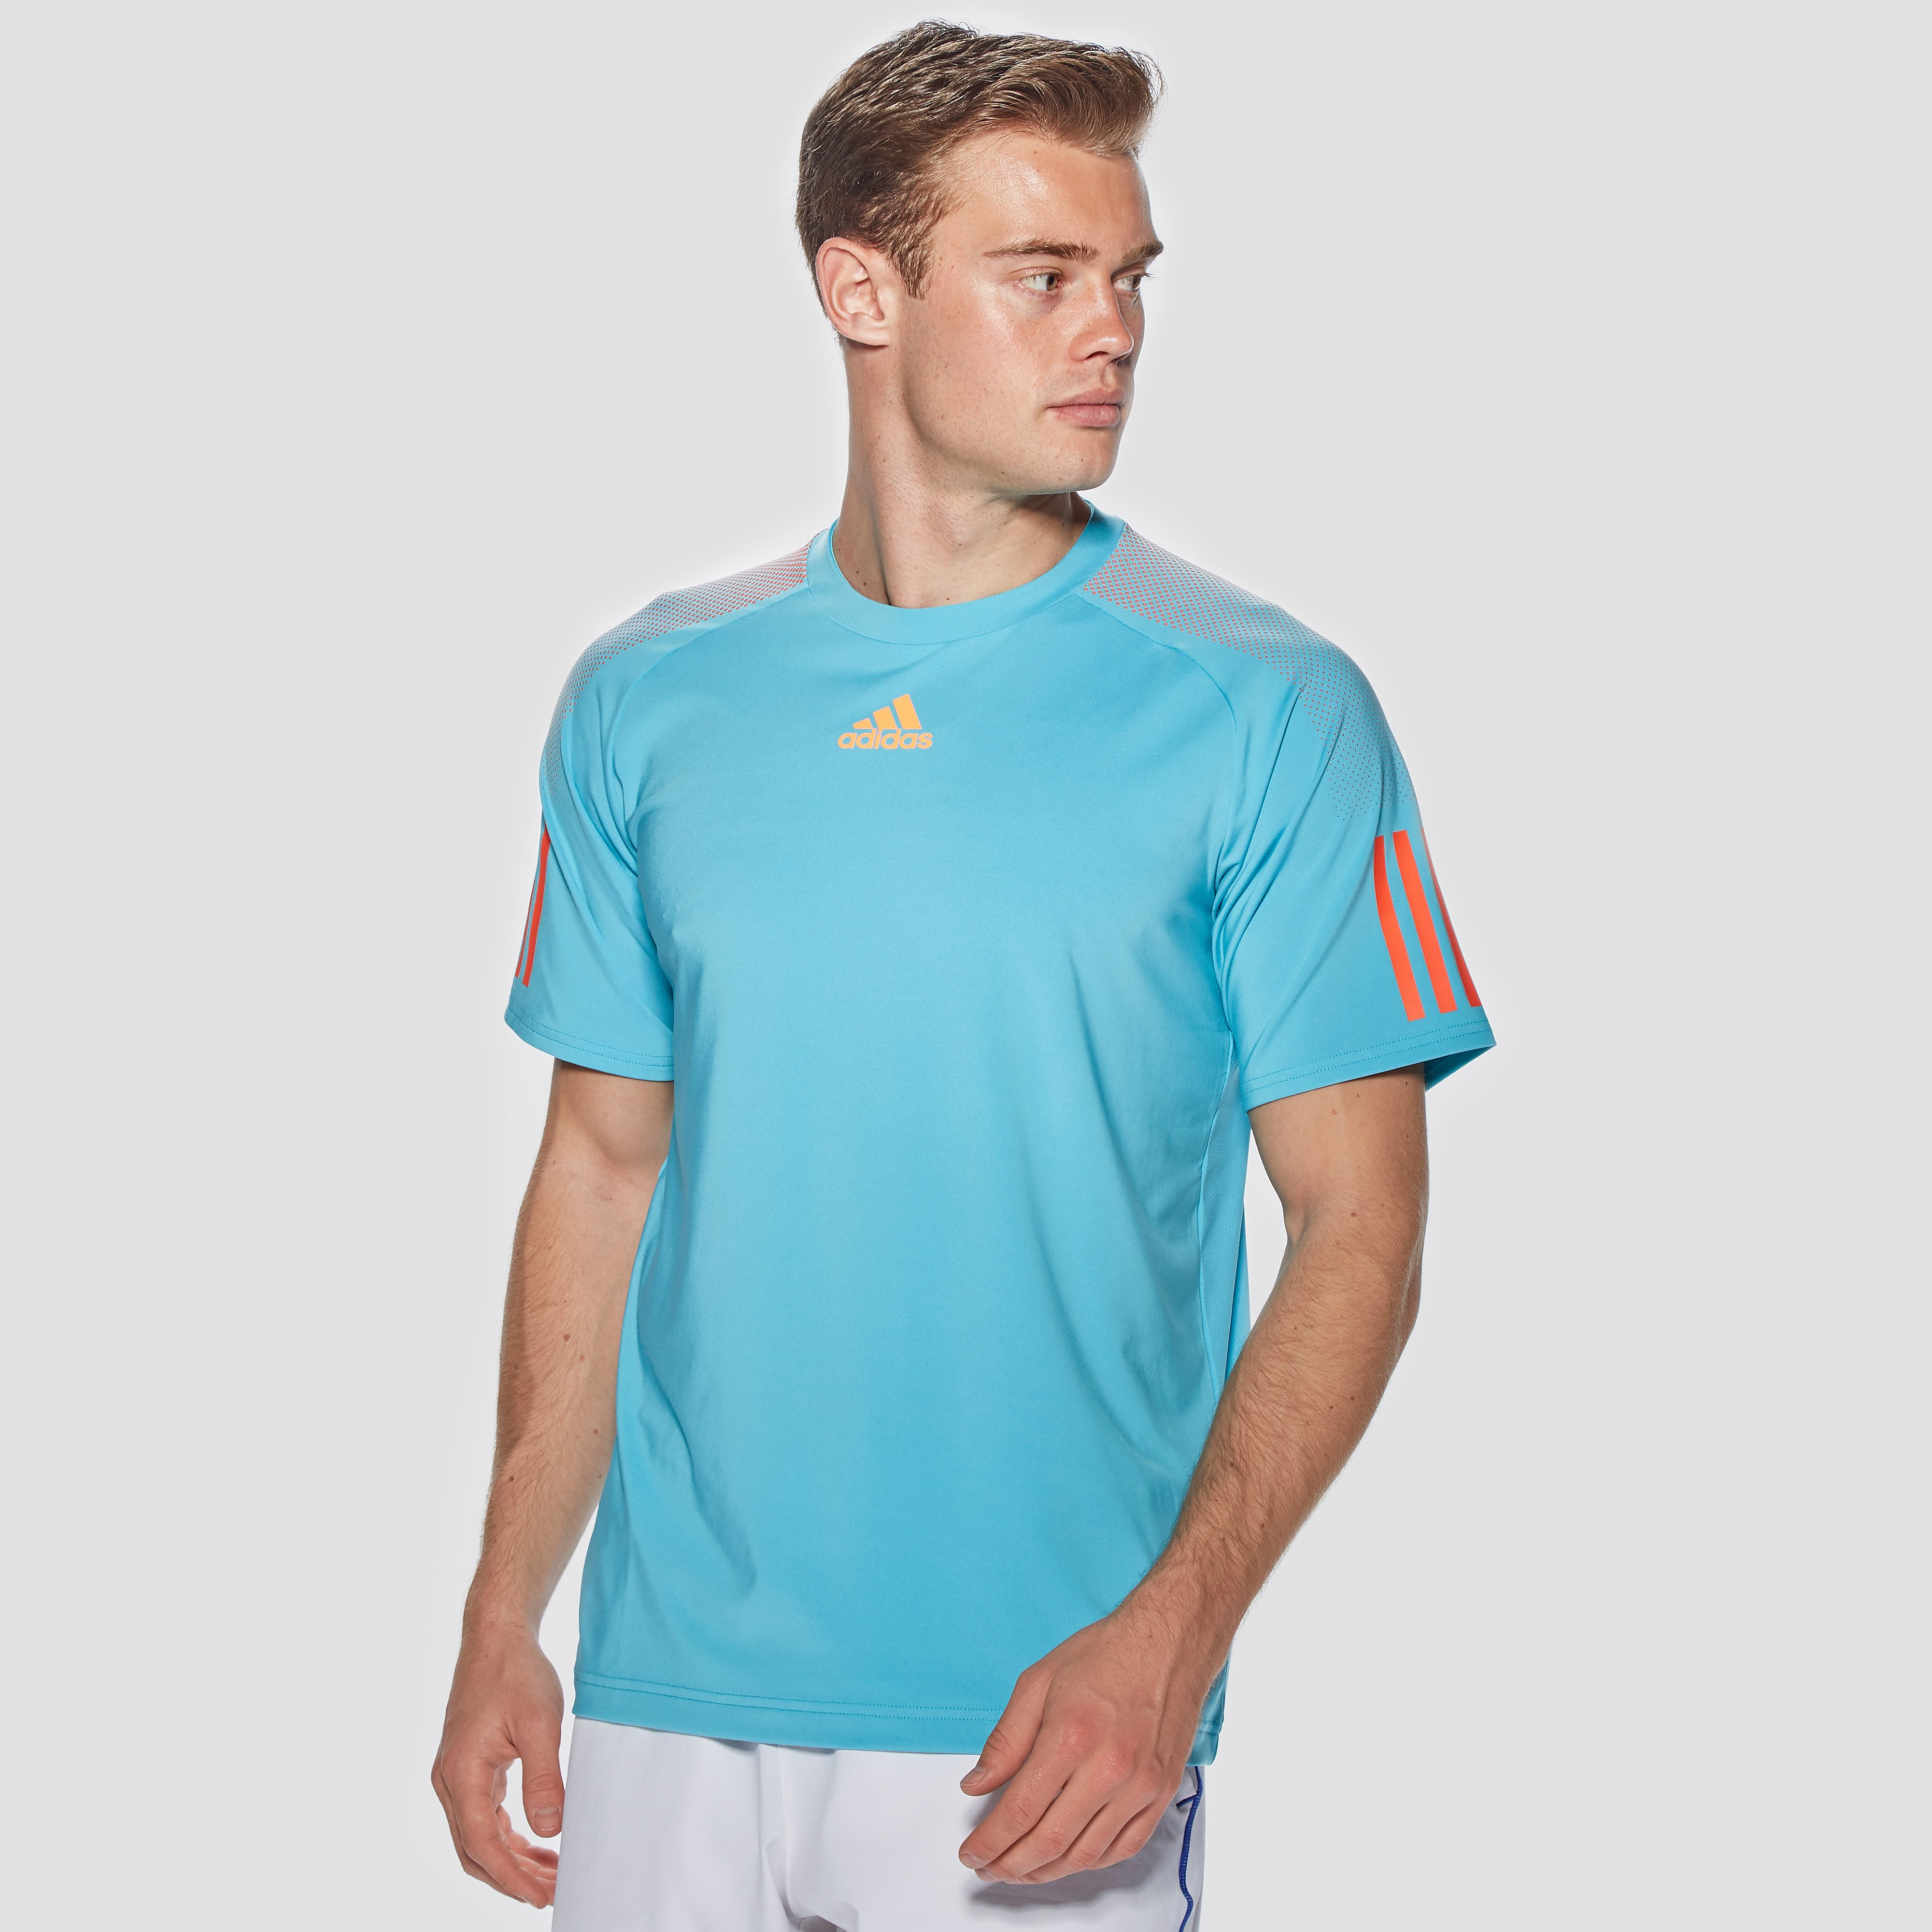 adidas Barricade Men's T- Shirt